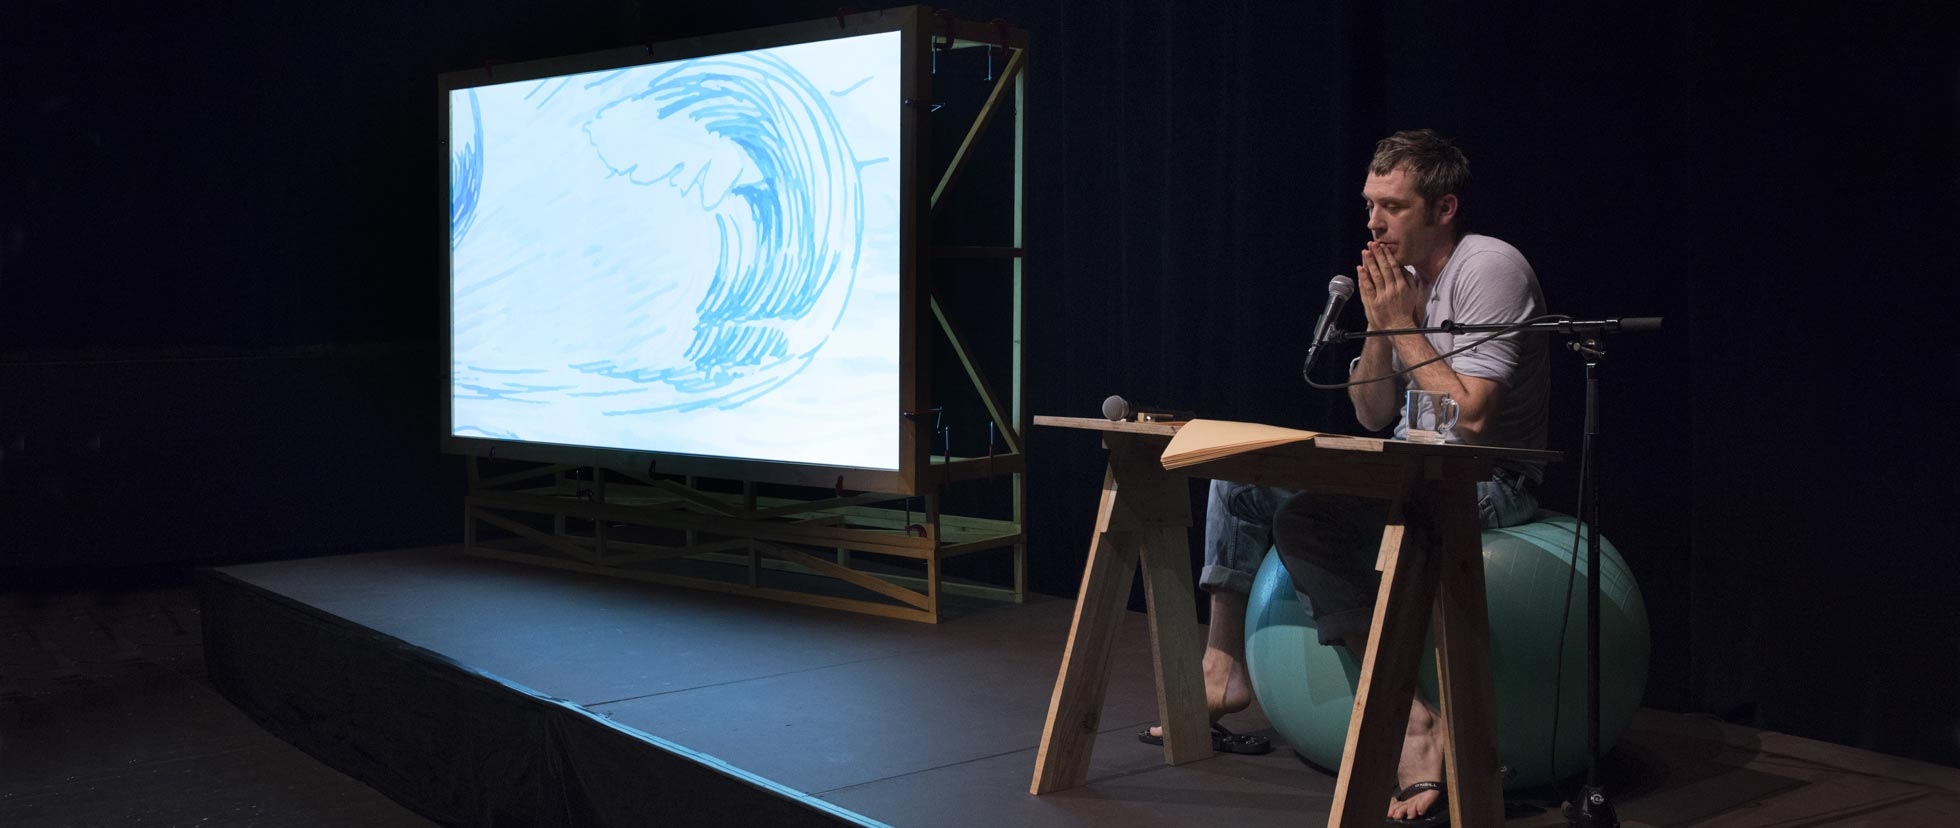 Julien Fournet seated behind a desk on stage next to a projection screen